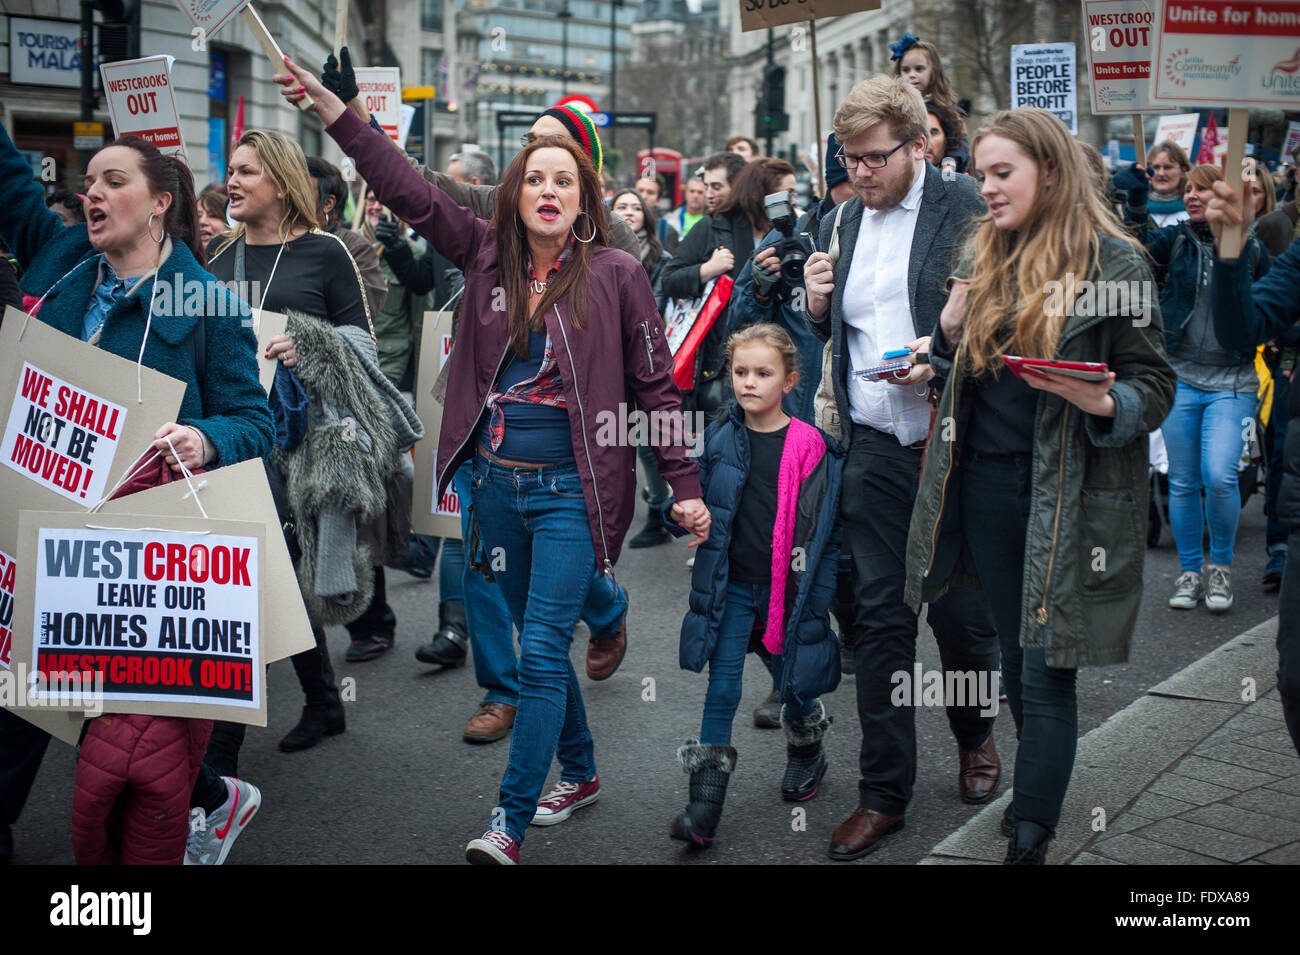 Family Protesters against Westbrook Investment's plan to evict New Era Estate families, London - Stock Image